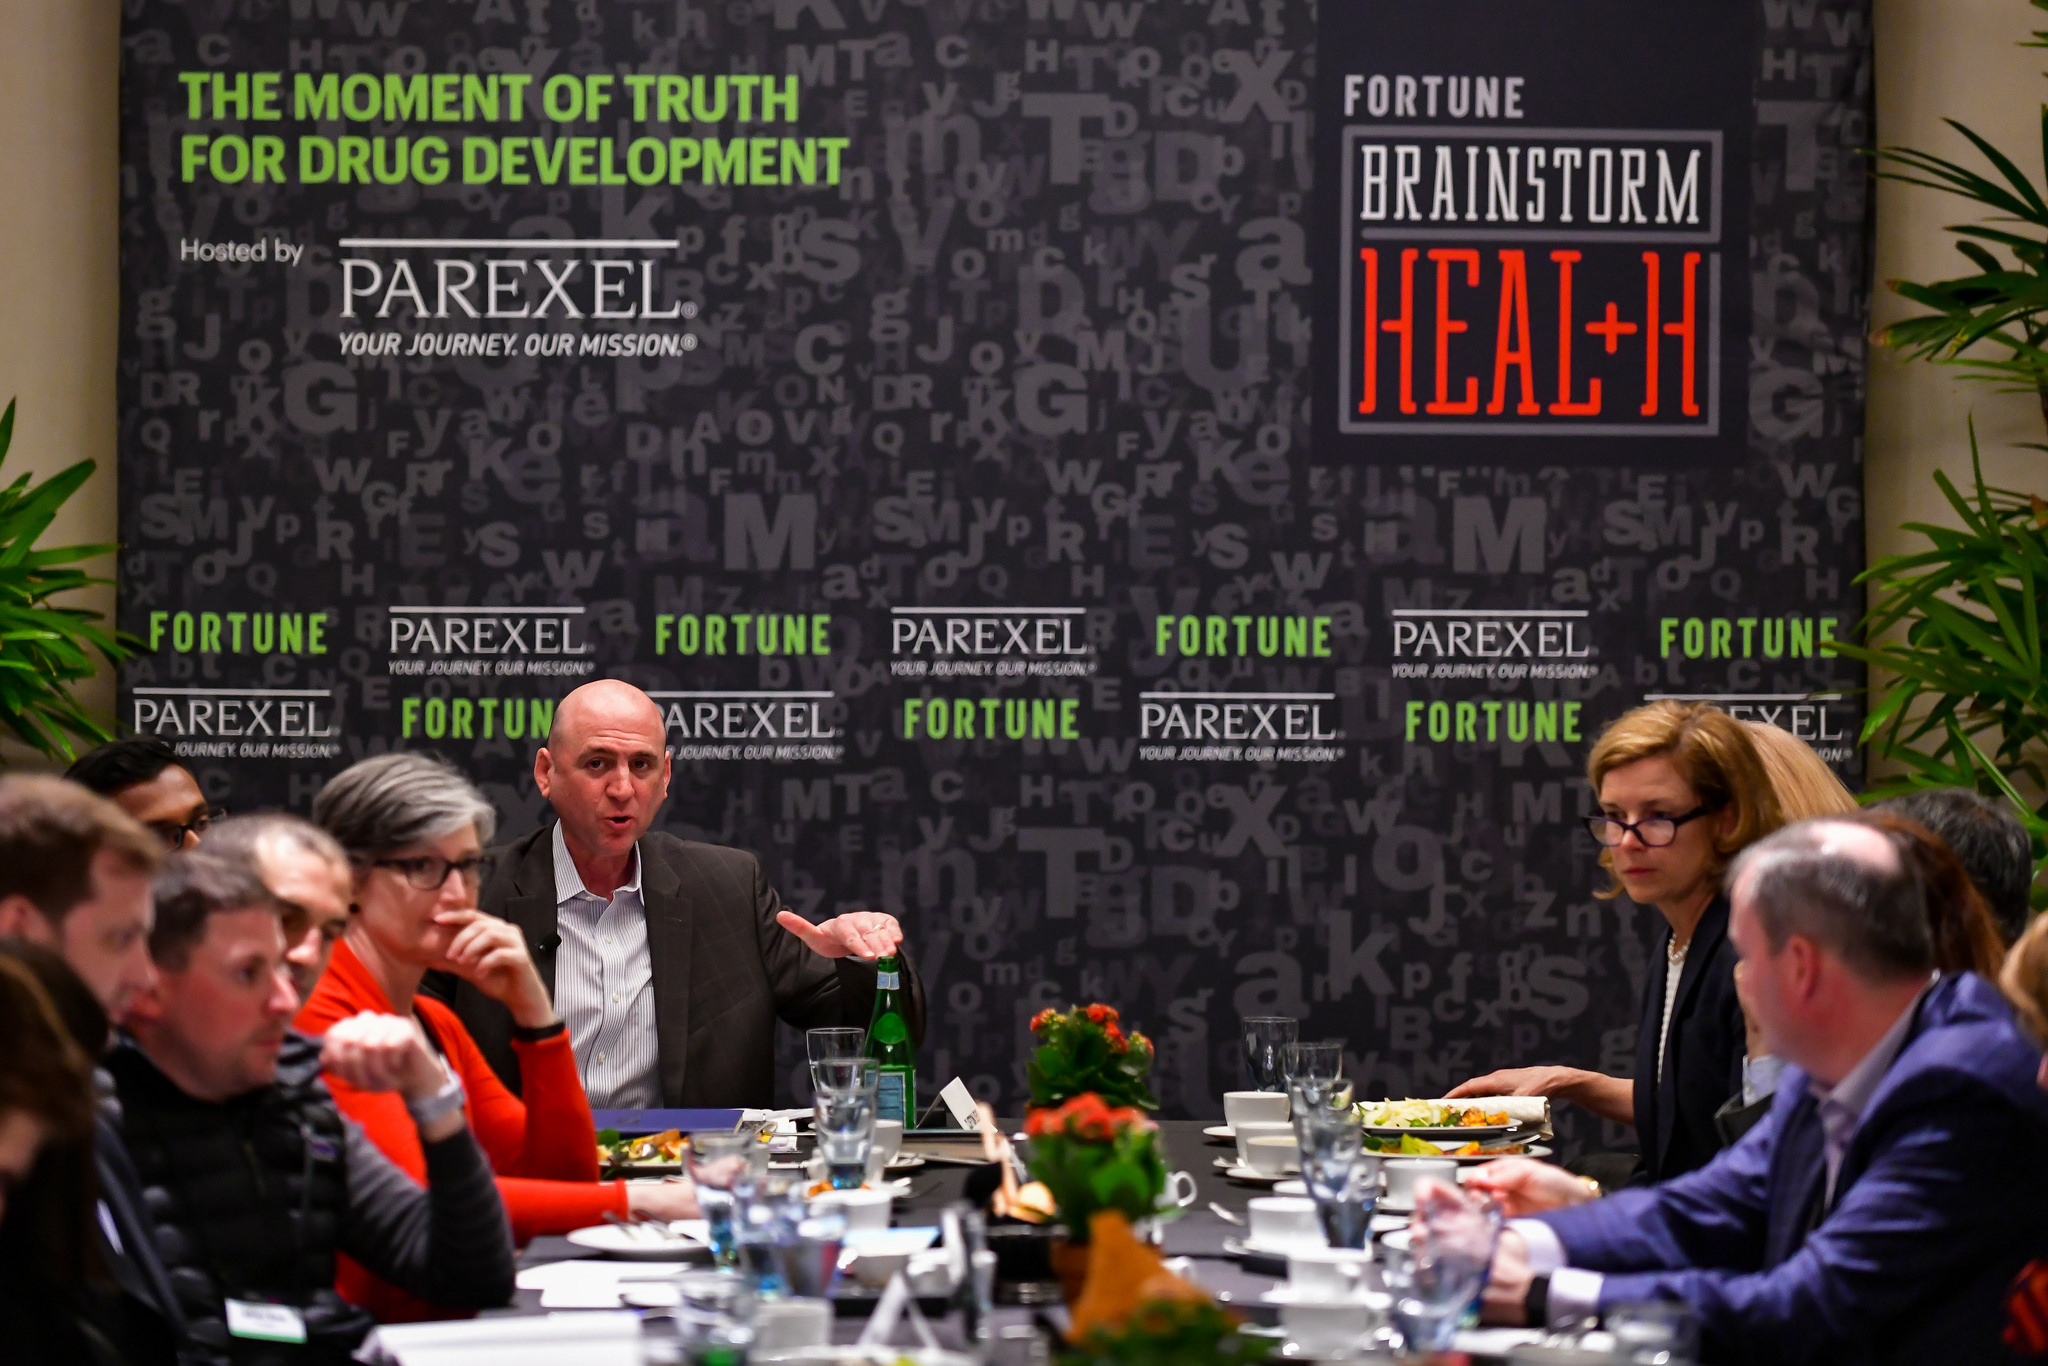 Fortune editor-in-chief Clifton Leaf addressing a room of industry experts at the 2018 Fortune Brainstorm Health conference in Laguna Niguel, Calif.